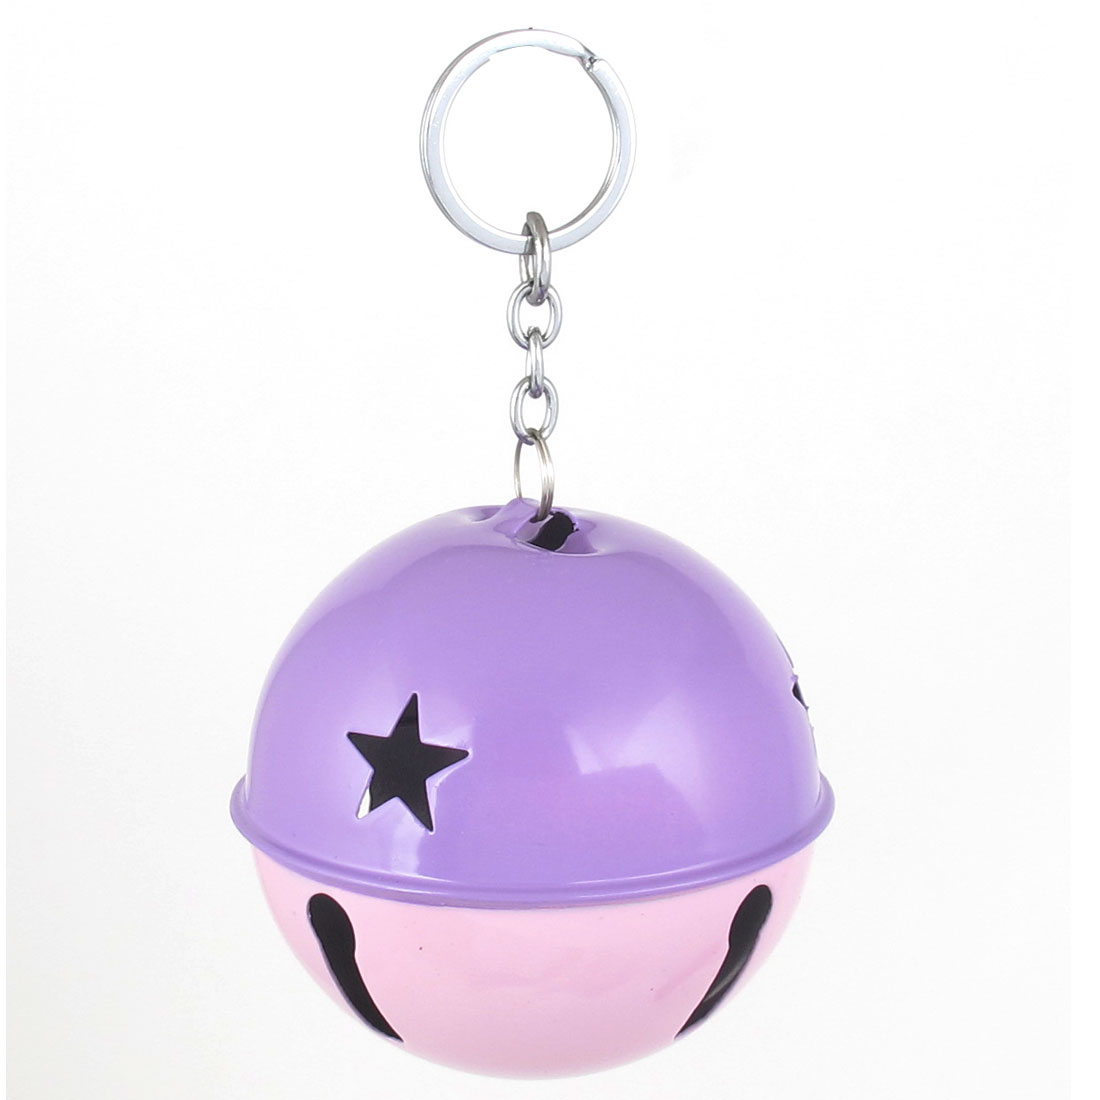 80mm Diameter Purple Pink Metal Keychain Split Hollow Out Design Ring Bell Ornament for Xmas Celebration Case Backpack Purse